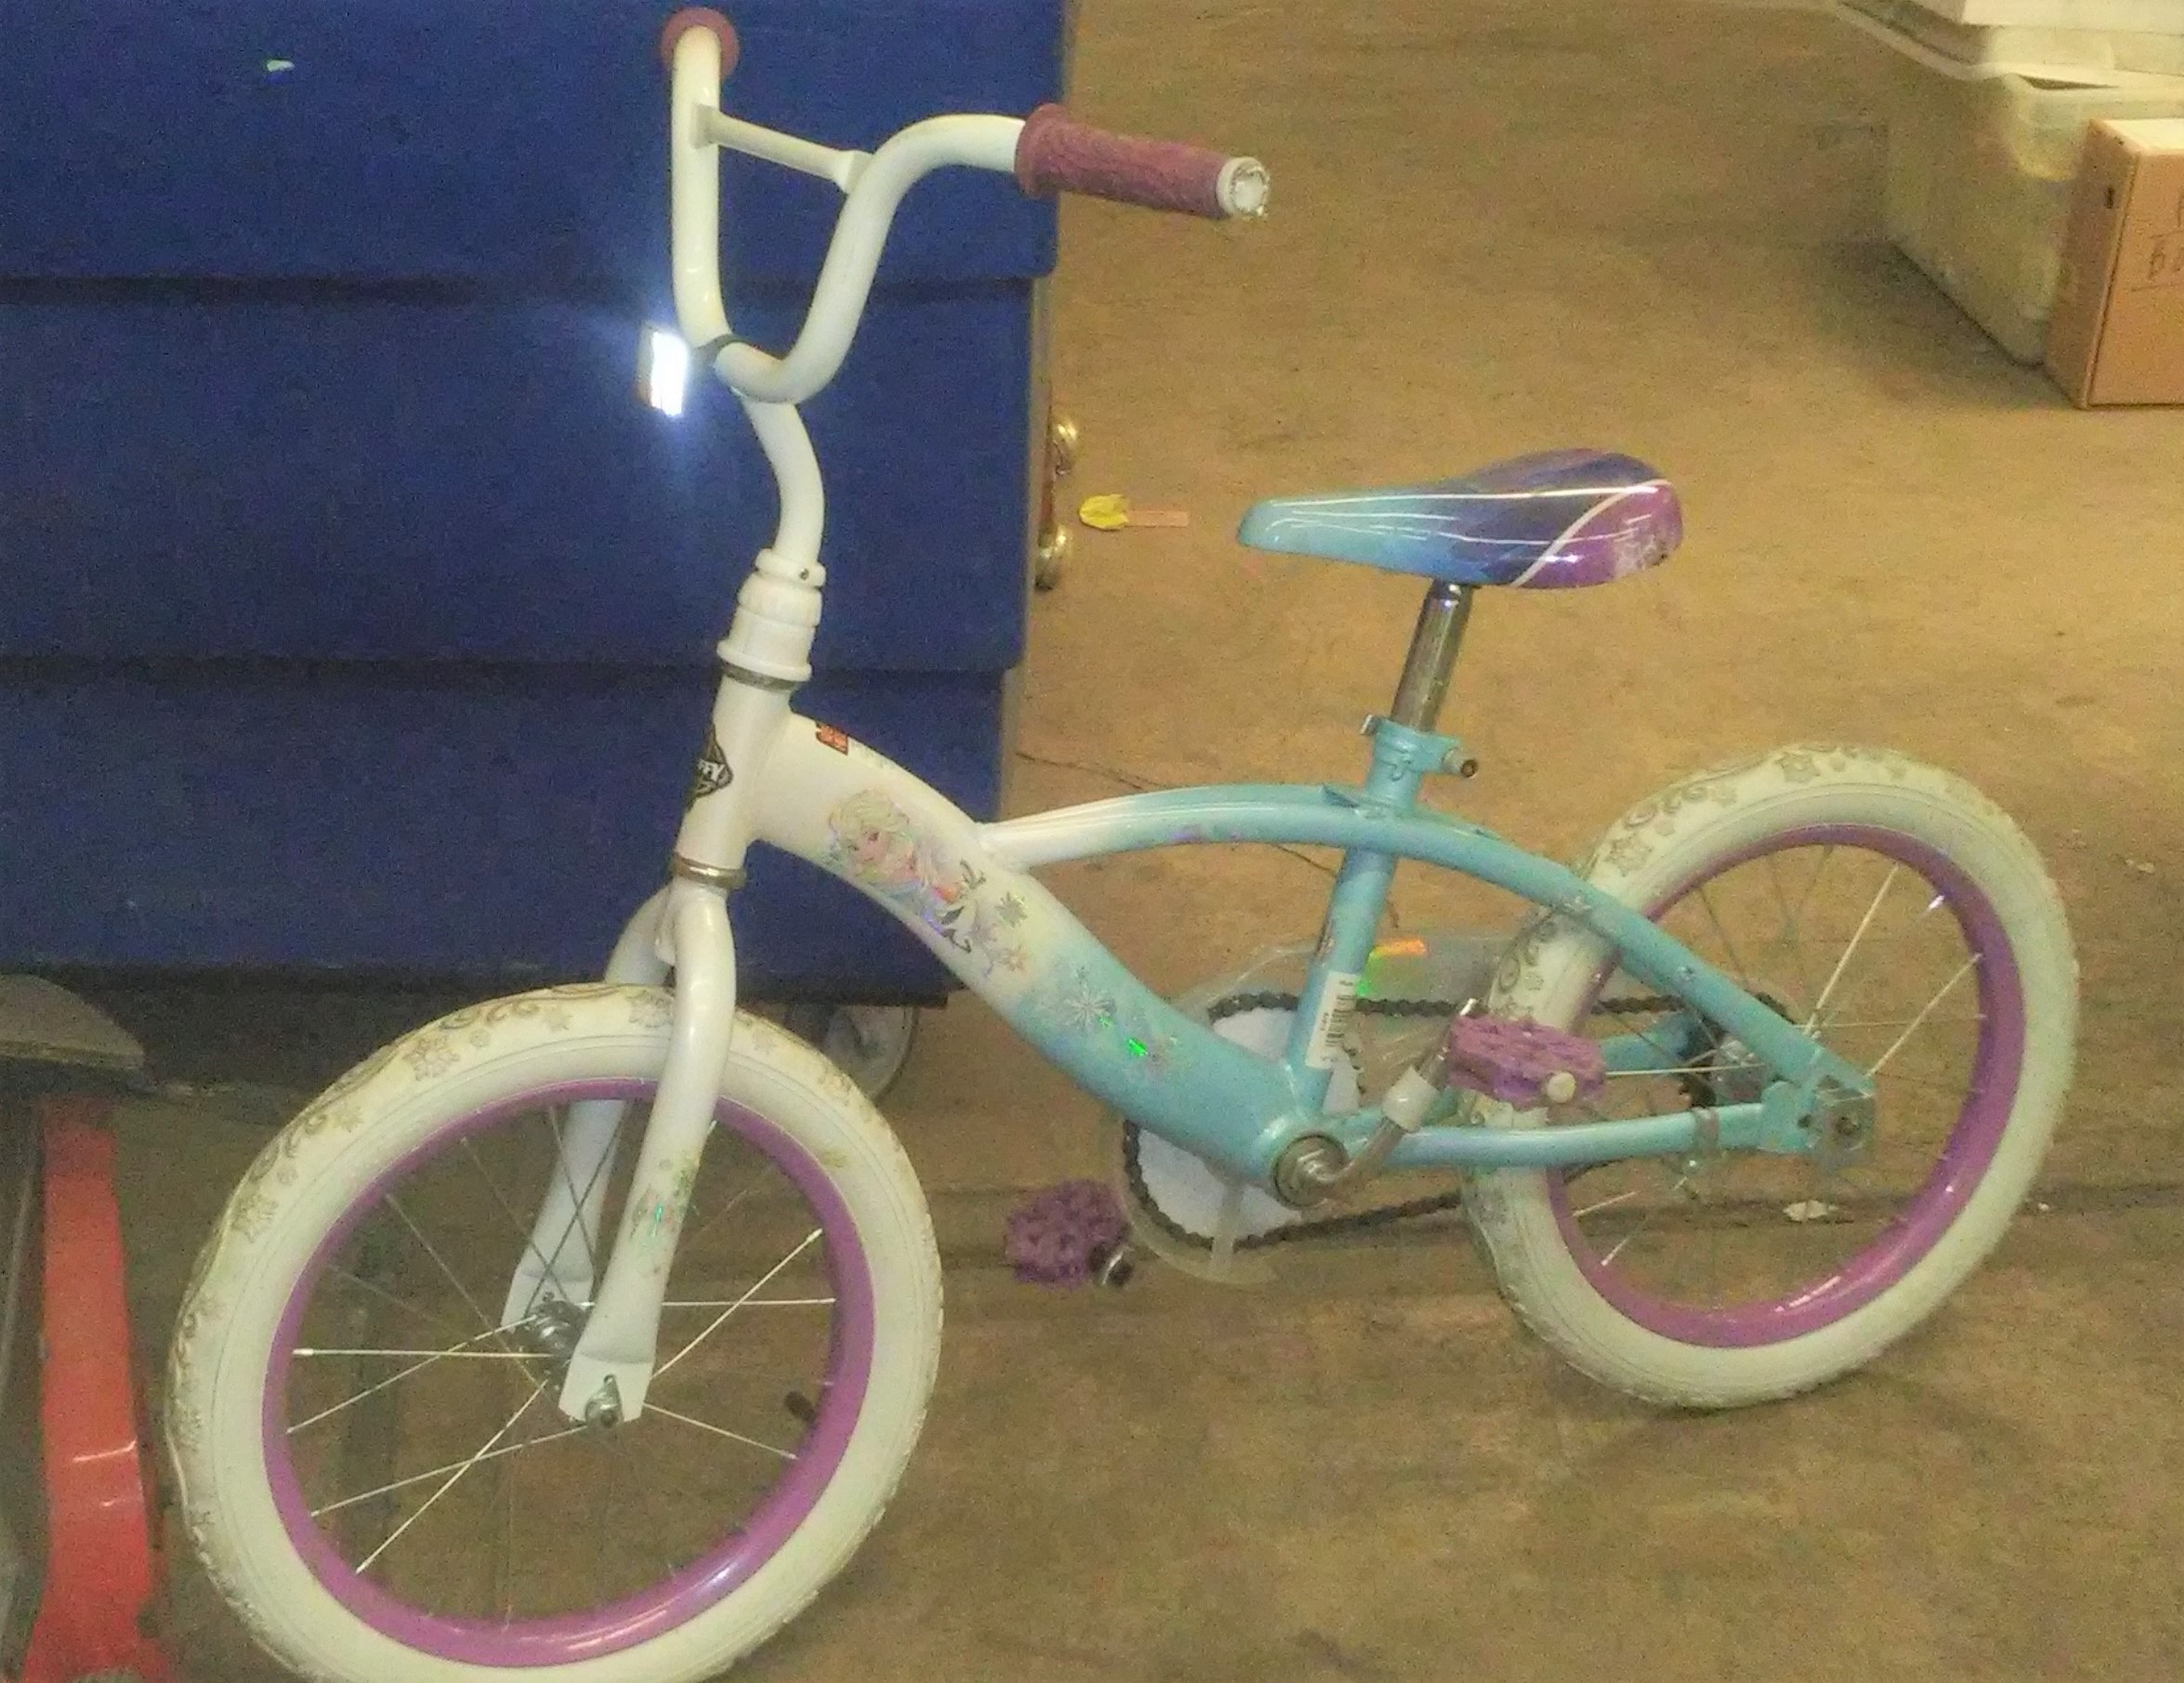 Kids' Disney Frozen Bike For Sale - Light Blue & Purple - Training Wheels Not Included - Used